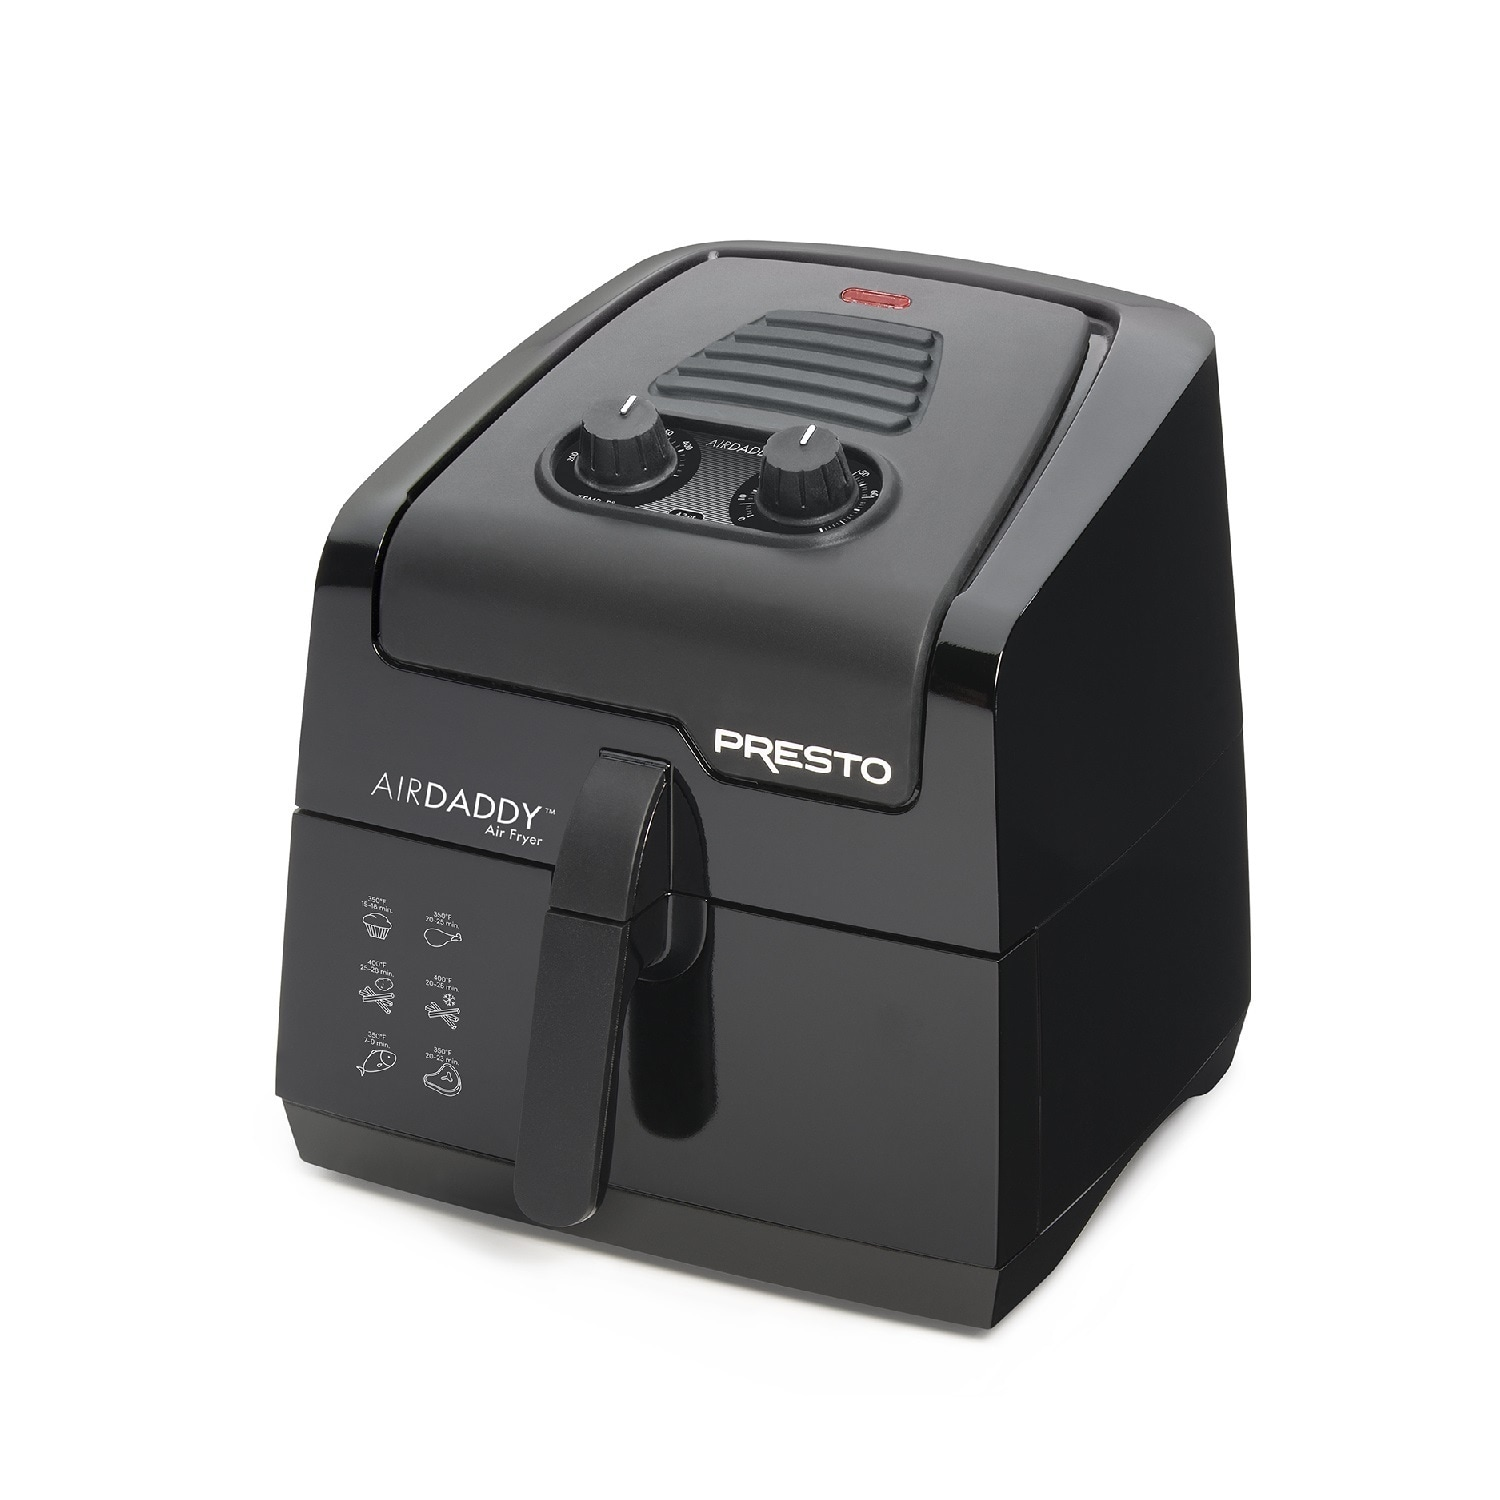 Presto AirDaddy 4.2 Qt. Air Fryer